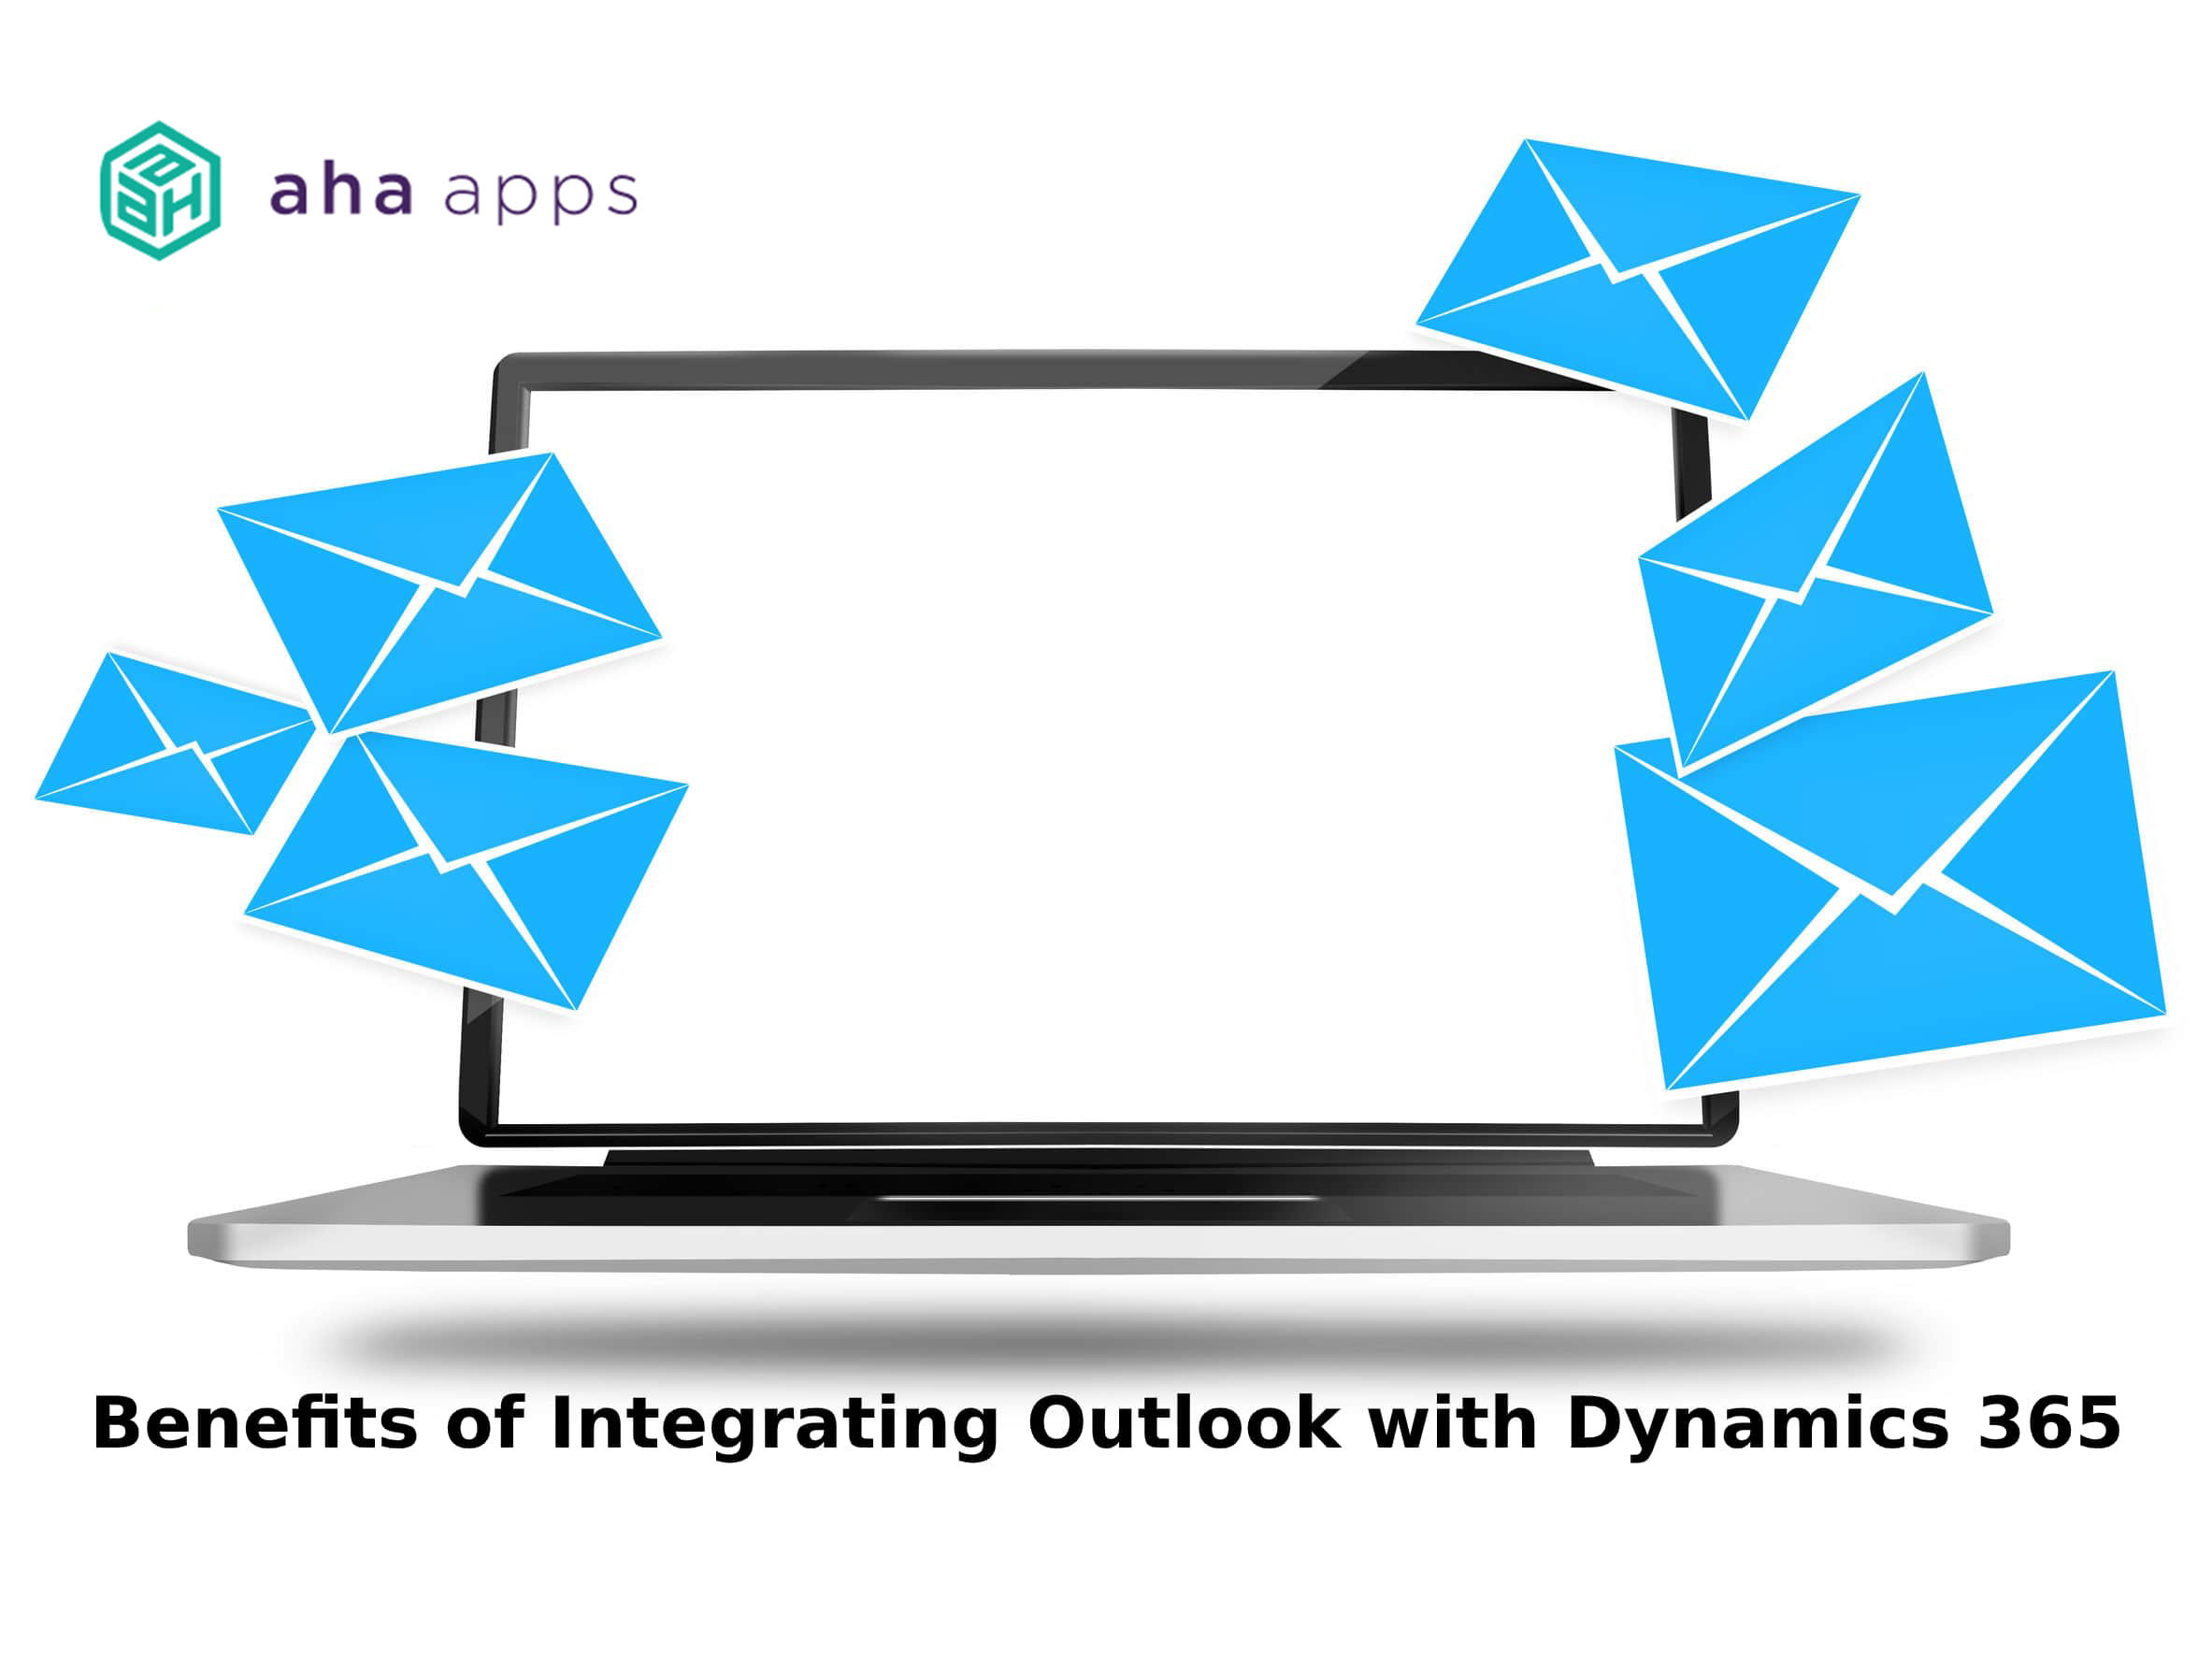 Benefits of integrating Outlook with Dynamics 365 - AhaApps